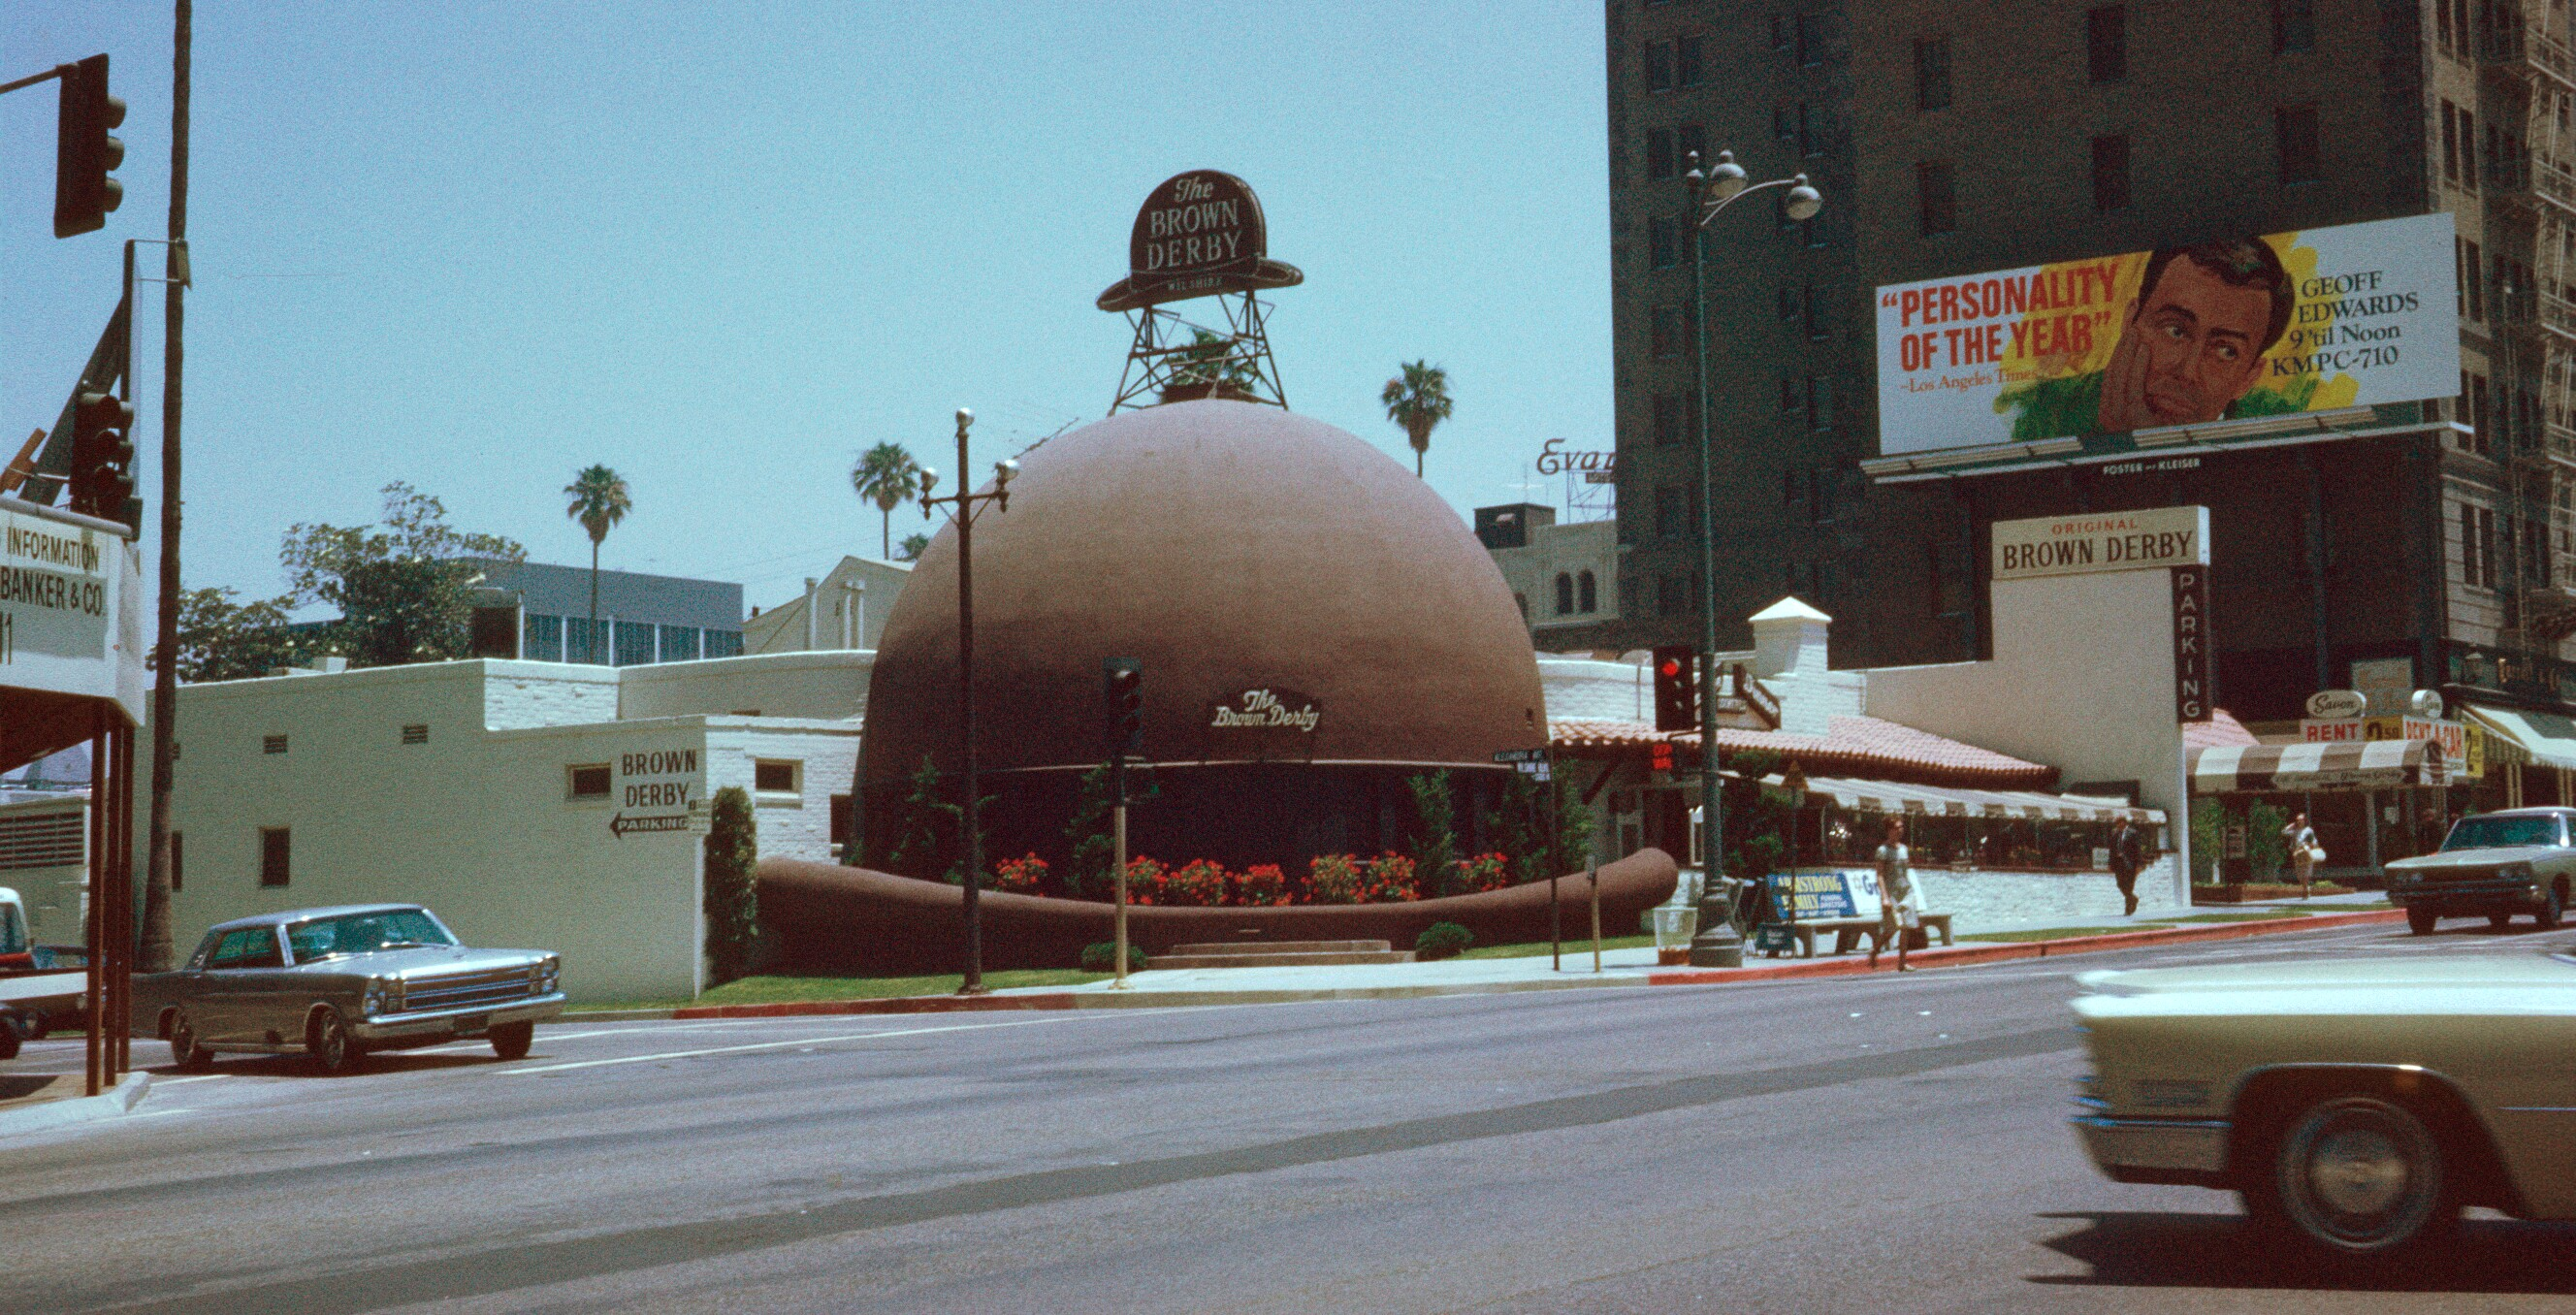 Photo by <a href='http://en.wikipedia.org/wiki/File:Brown_Derby_Restaurant_,_Los_Angeles_,_Kodachrome_by_Chalmers_Butterfield.jpg'>Chalmers Butterfield</a>